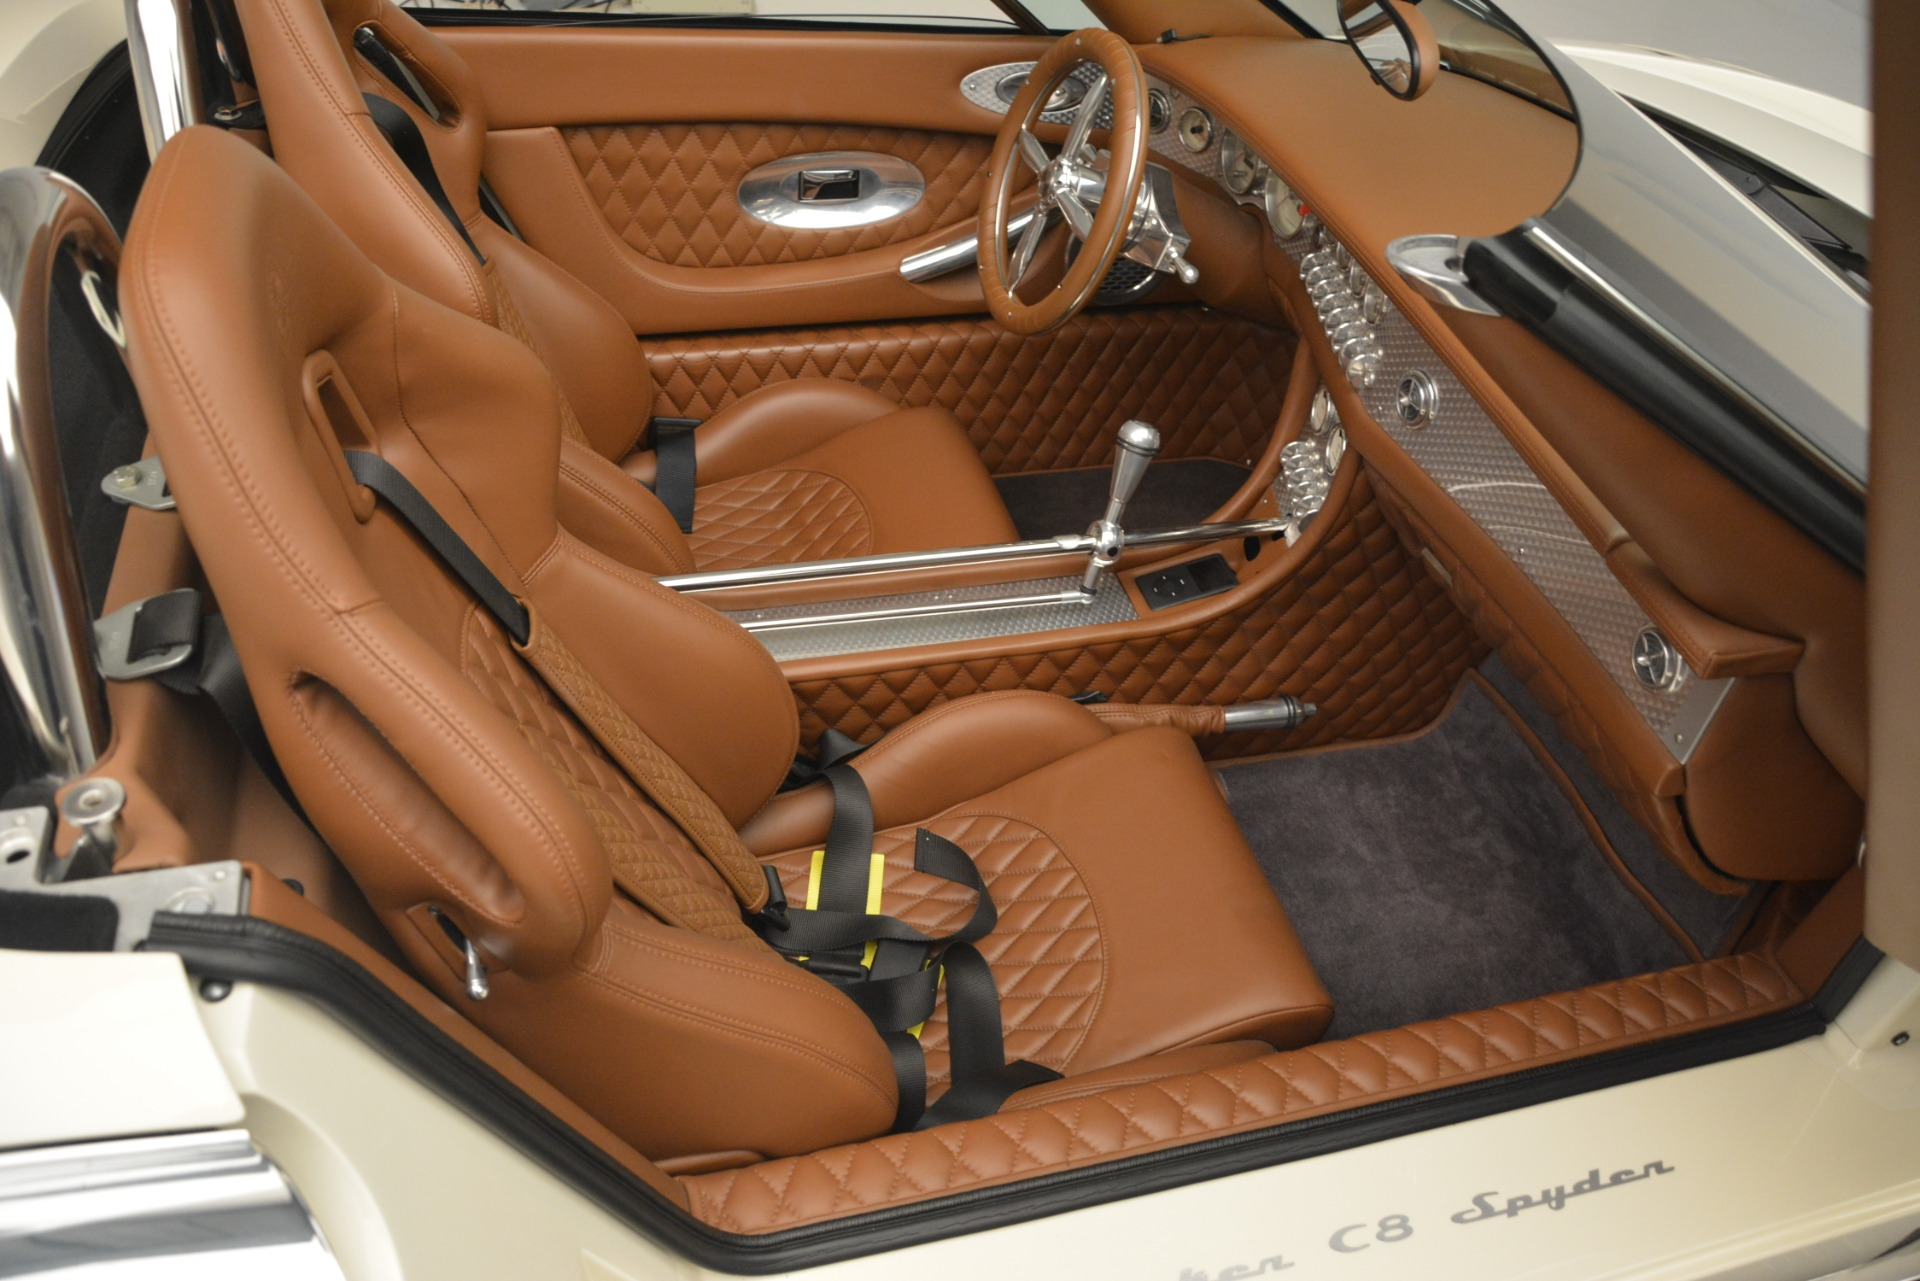 Used 2006 Spyker C8 Spyder  For Sale In Greenwich, CT 1661_p22